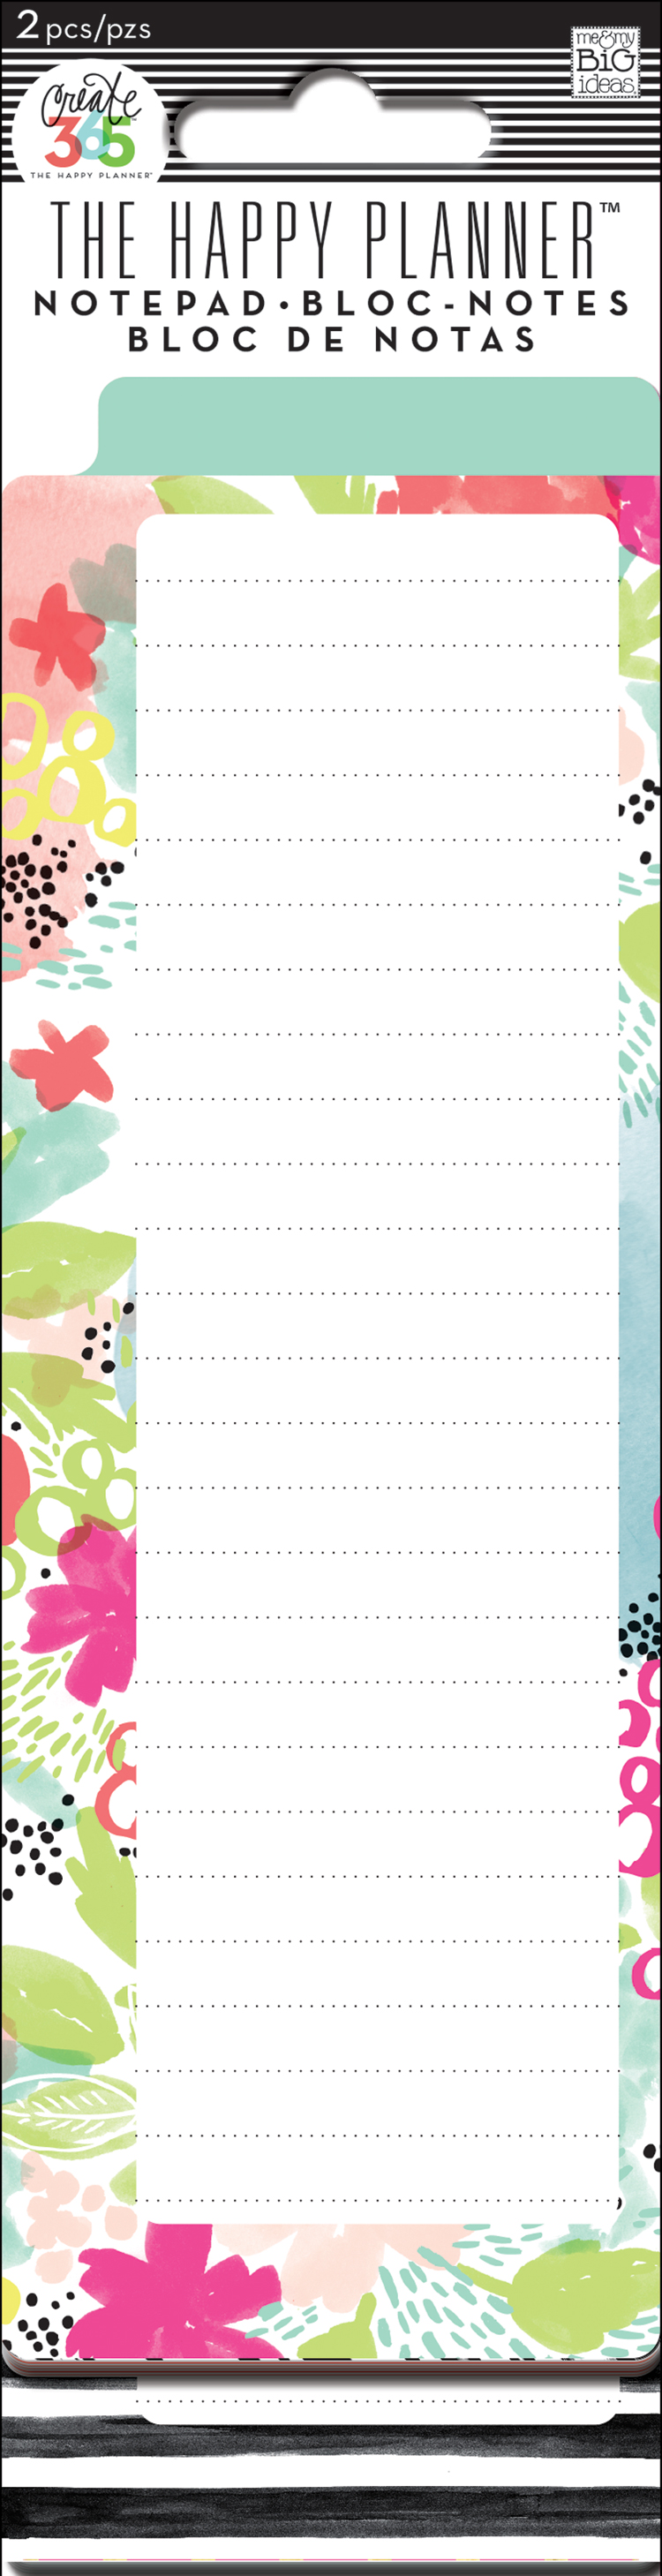 'Live Loud' List Pad for The Happy Planner™   me & my BIG ideas.jpg